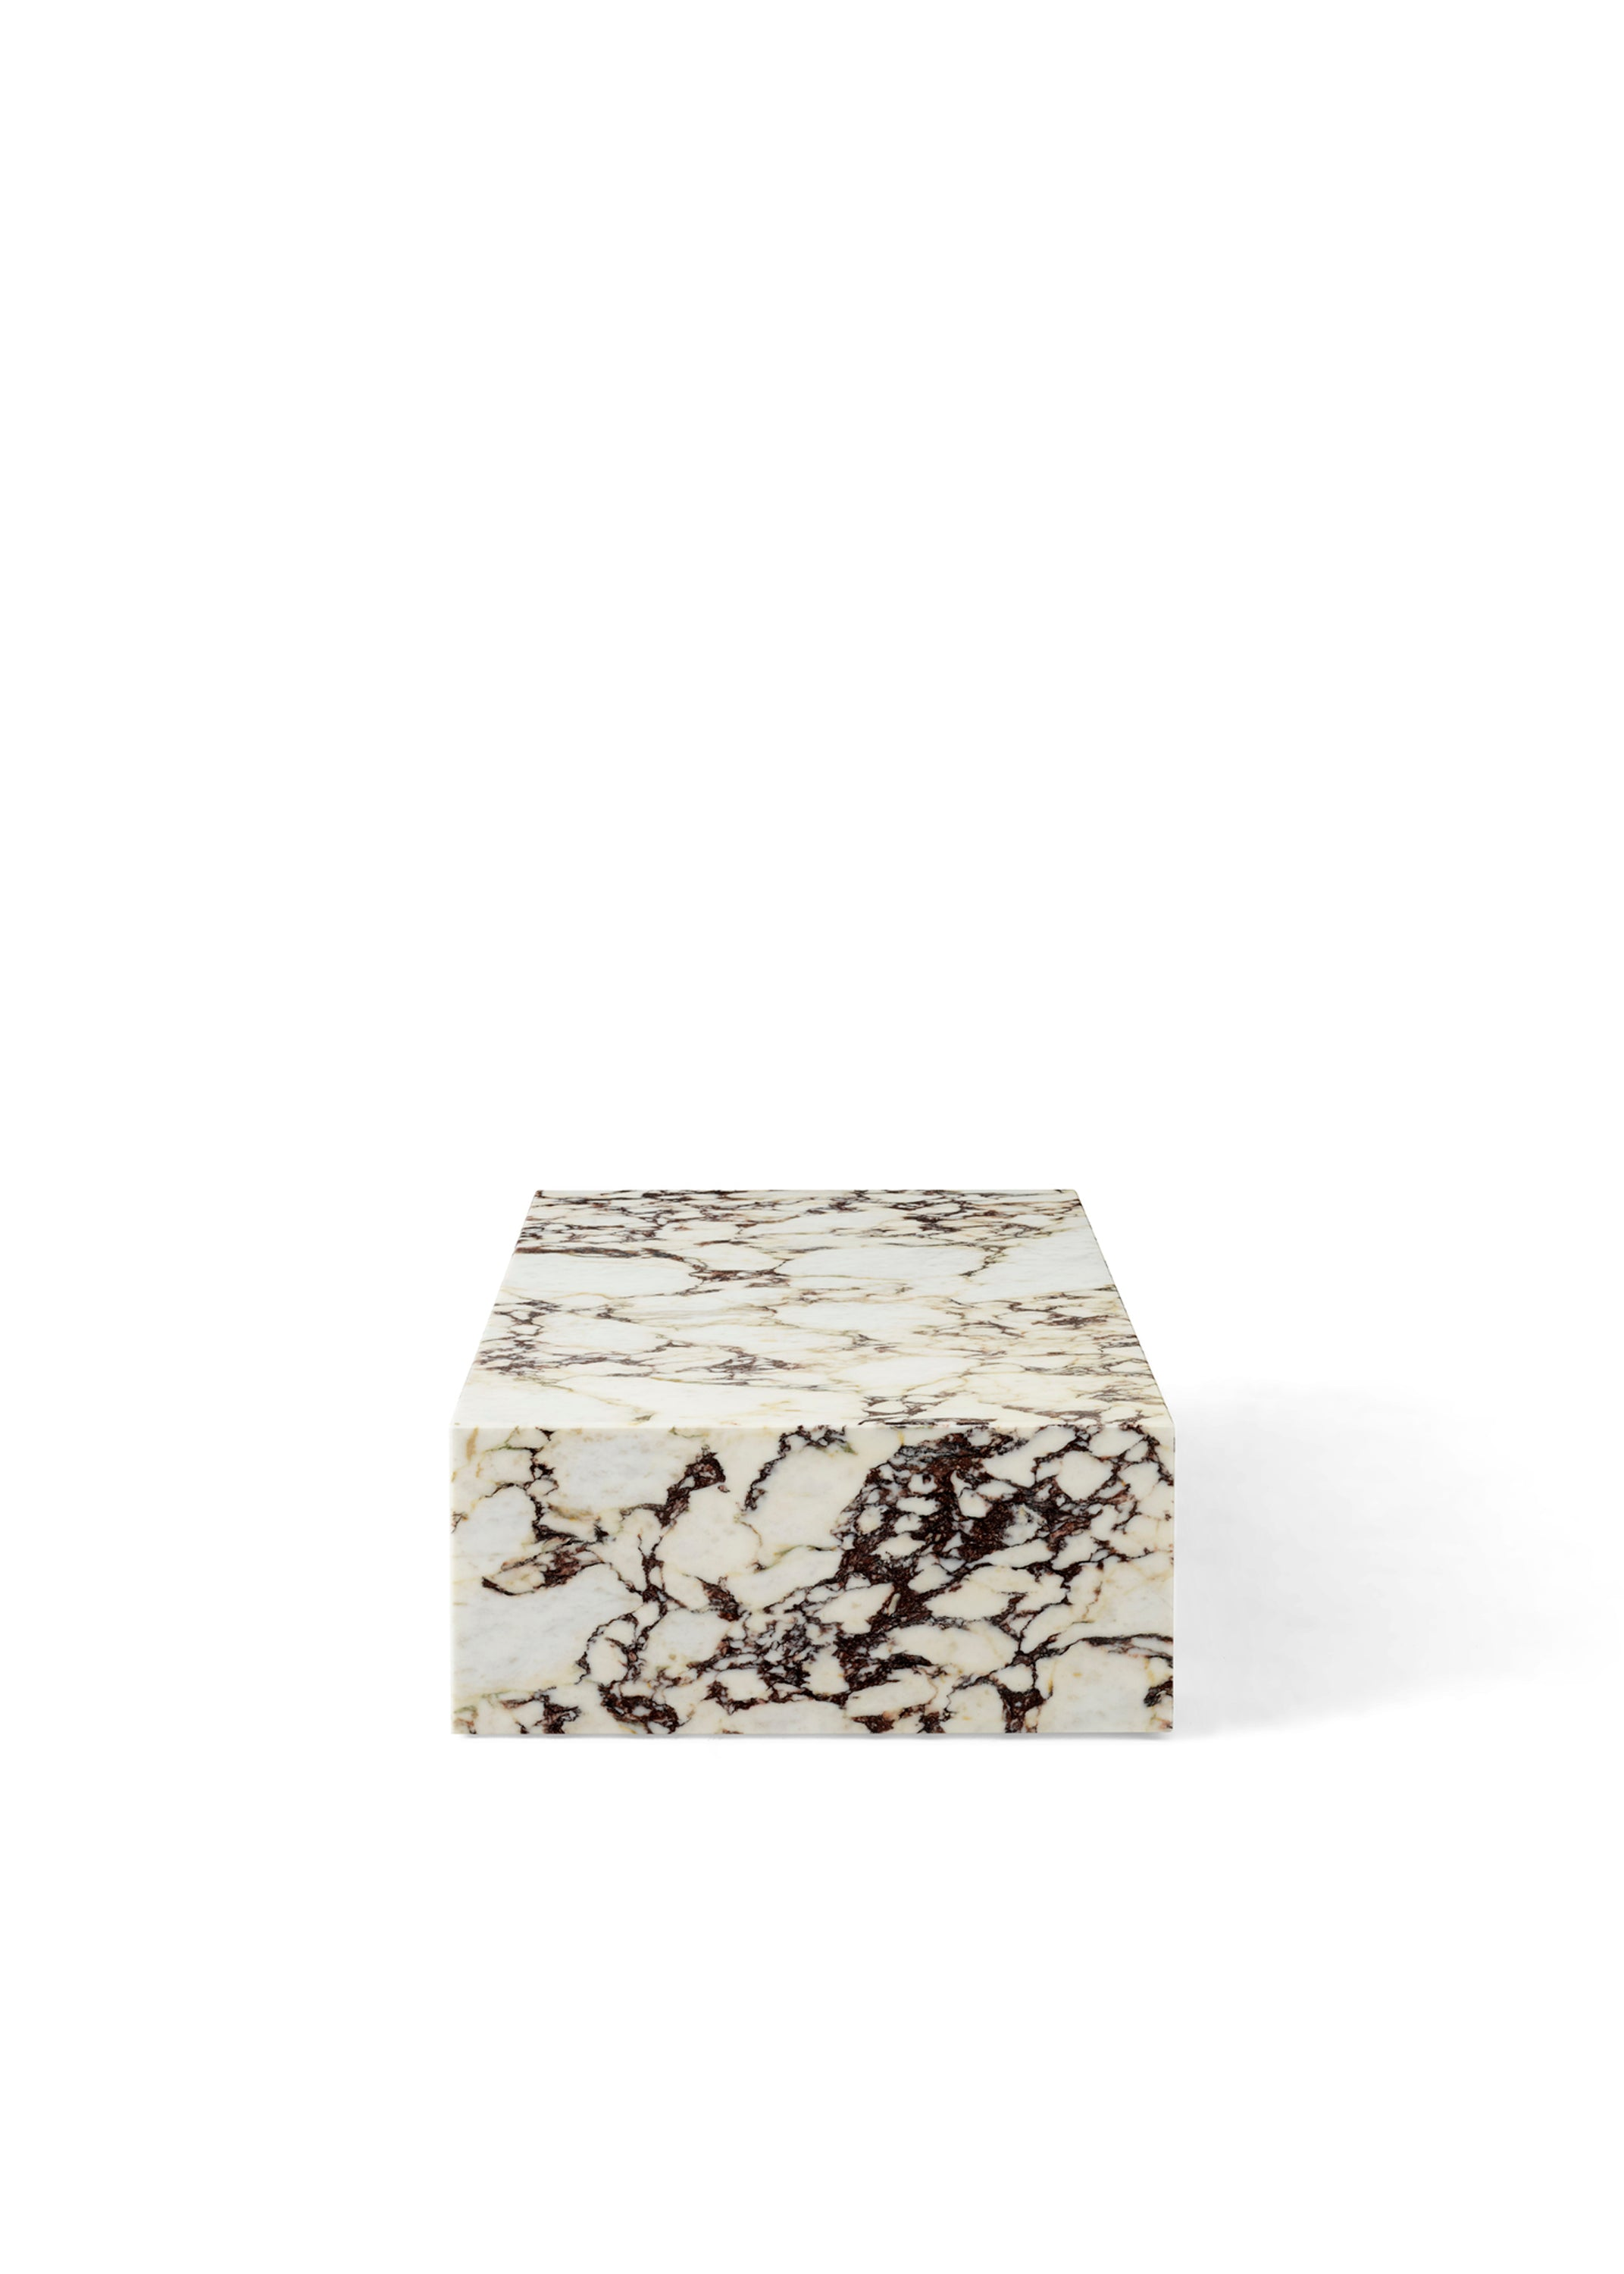 Plinth Low, Rose Marble fra Menu